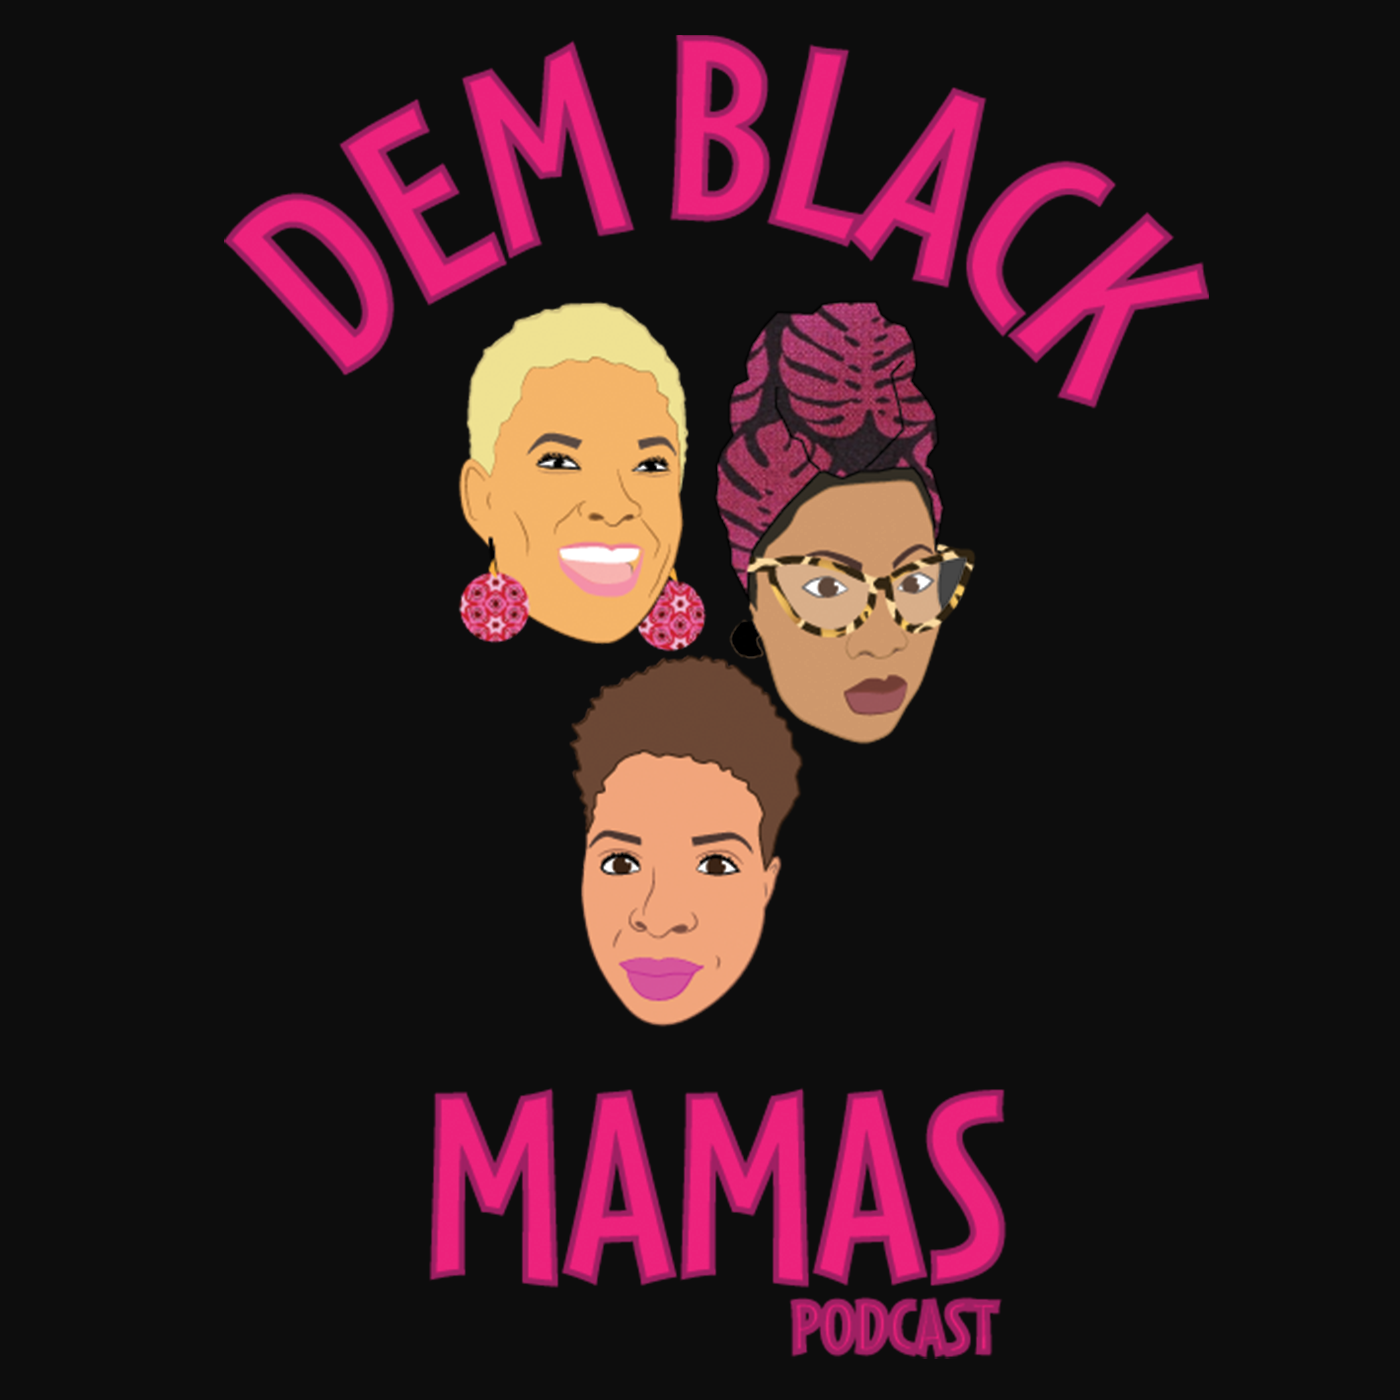 Dem Black Mamas Podcast show art